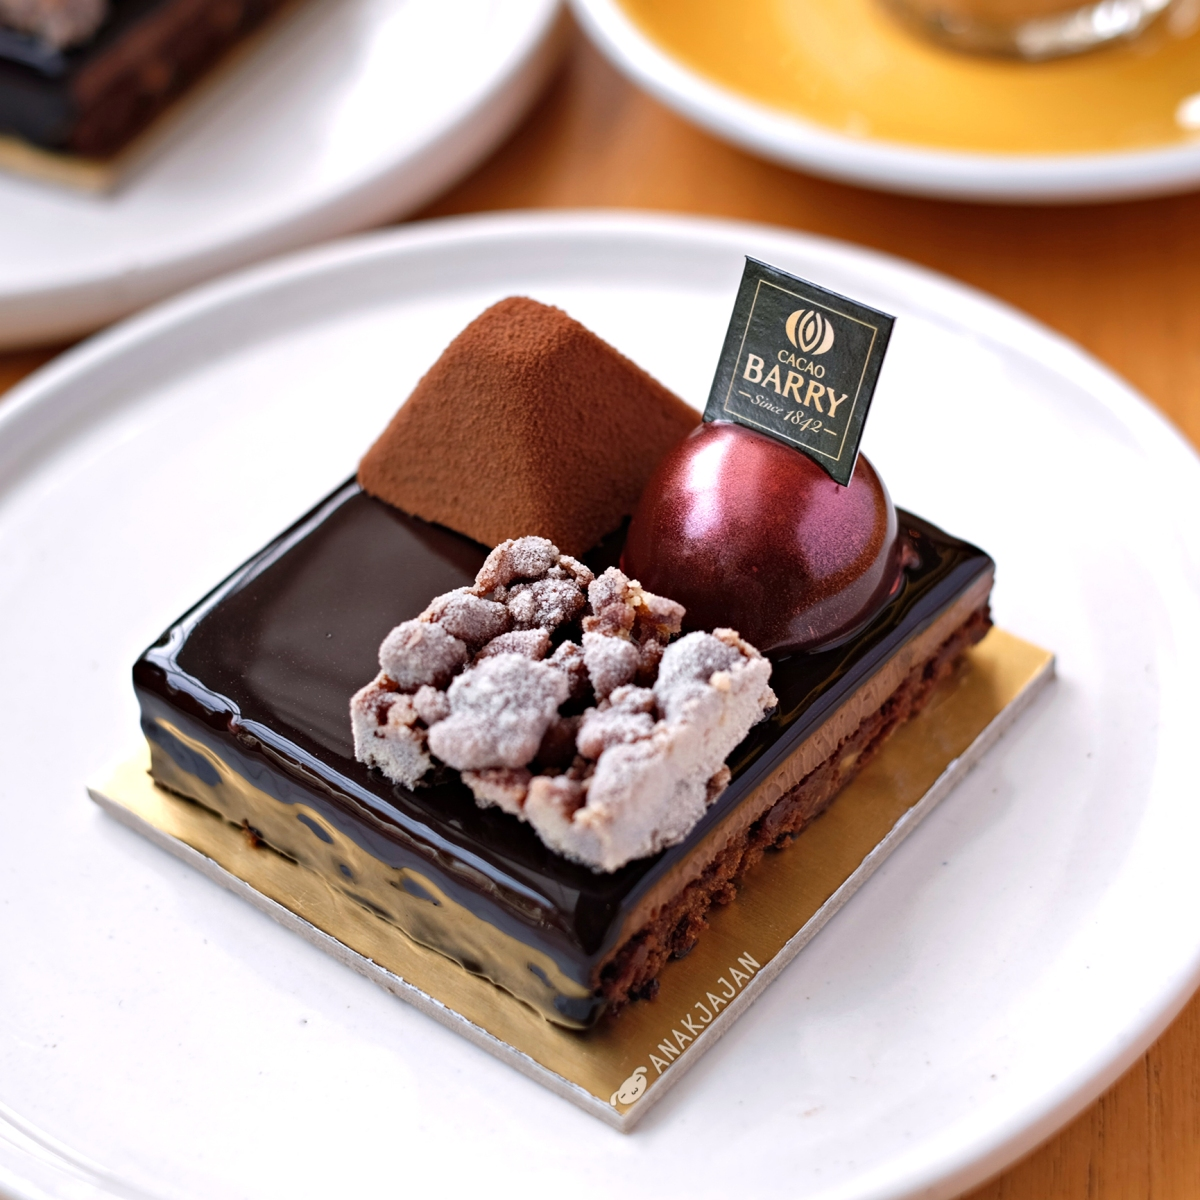 Cacao Barry Purity From Nature Couverture Chocolate Voucher Eric Kayser